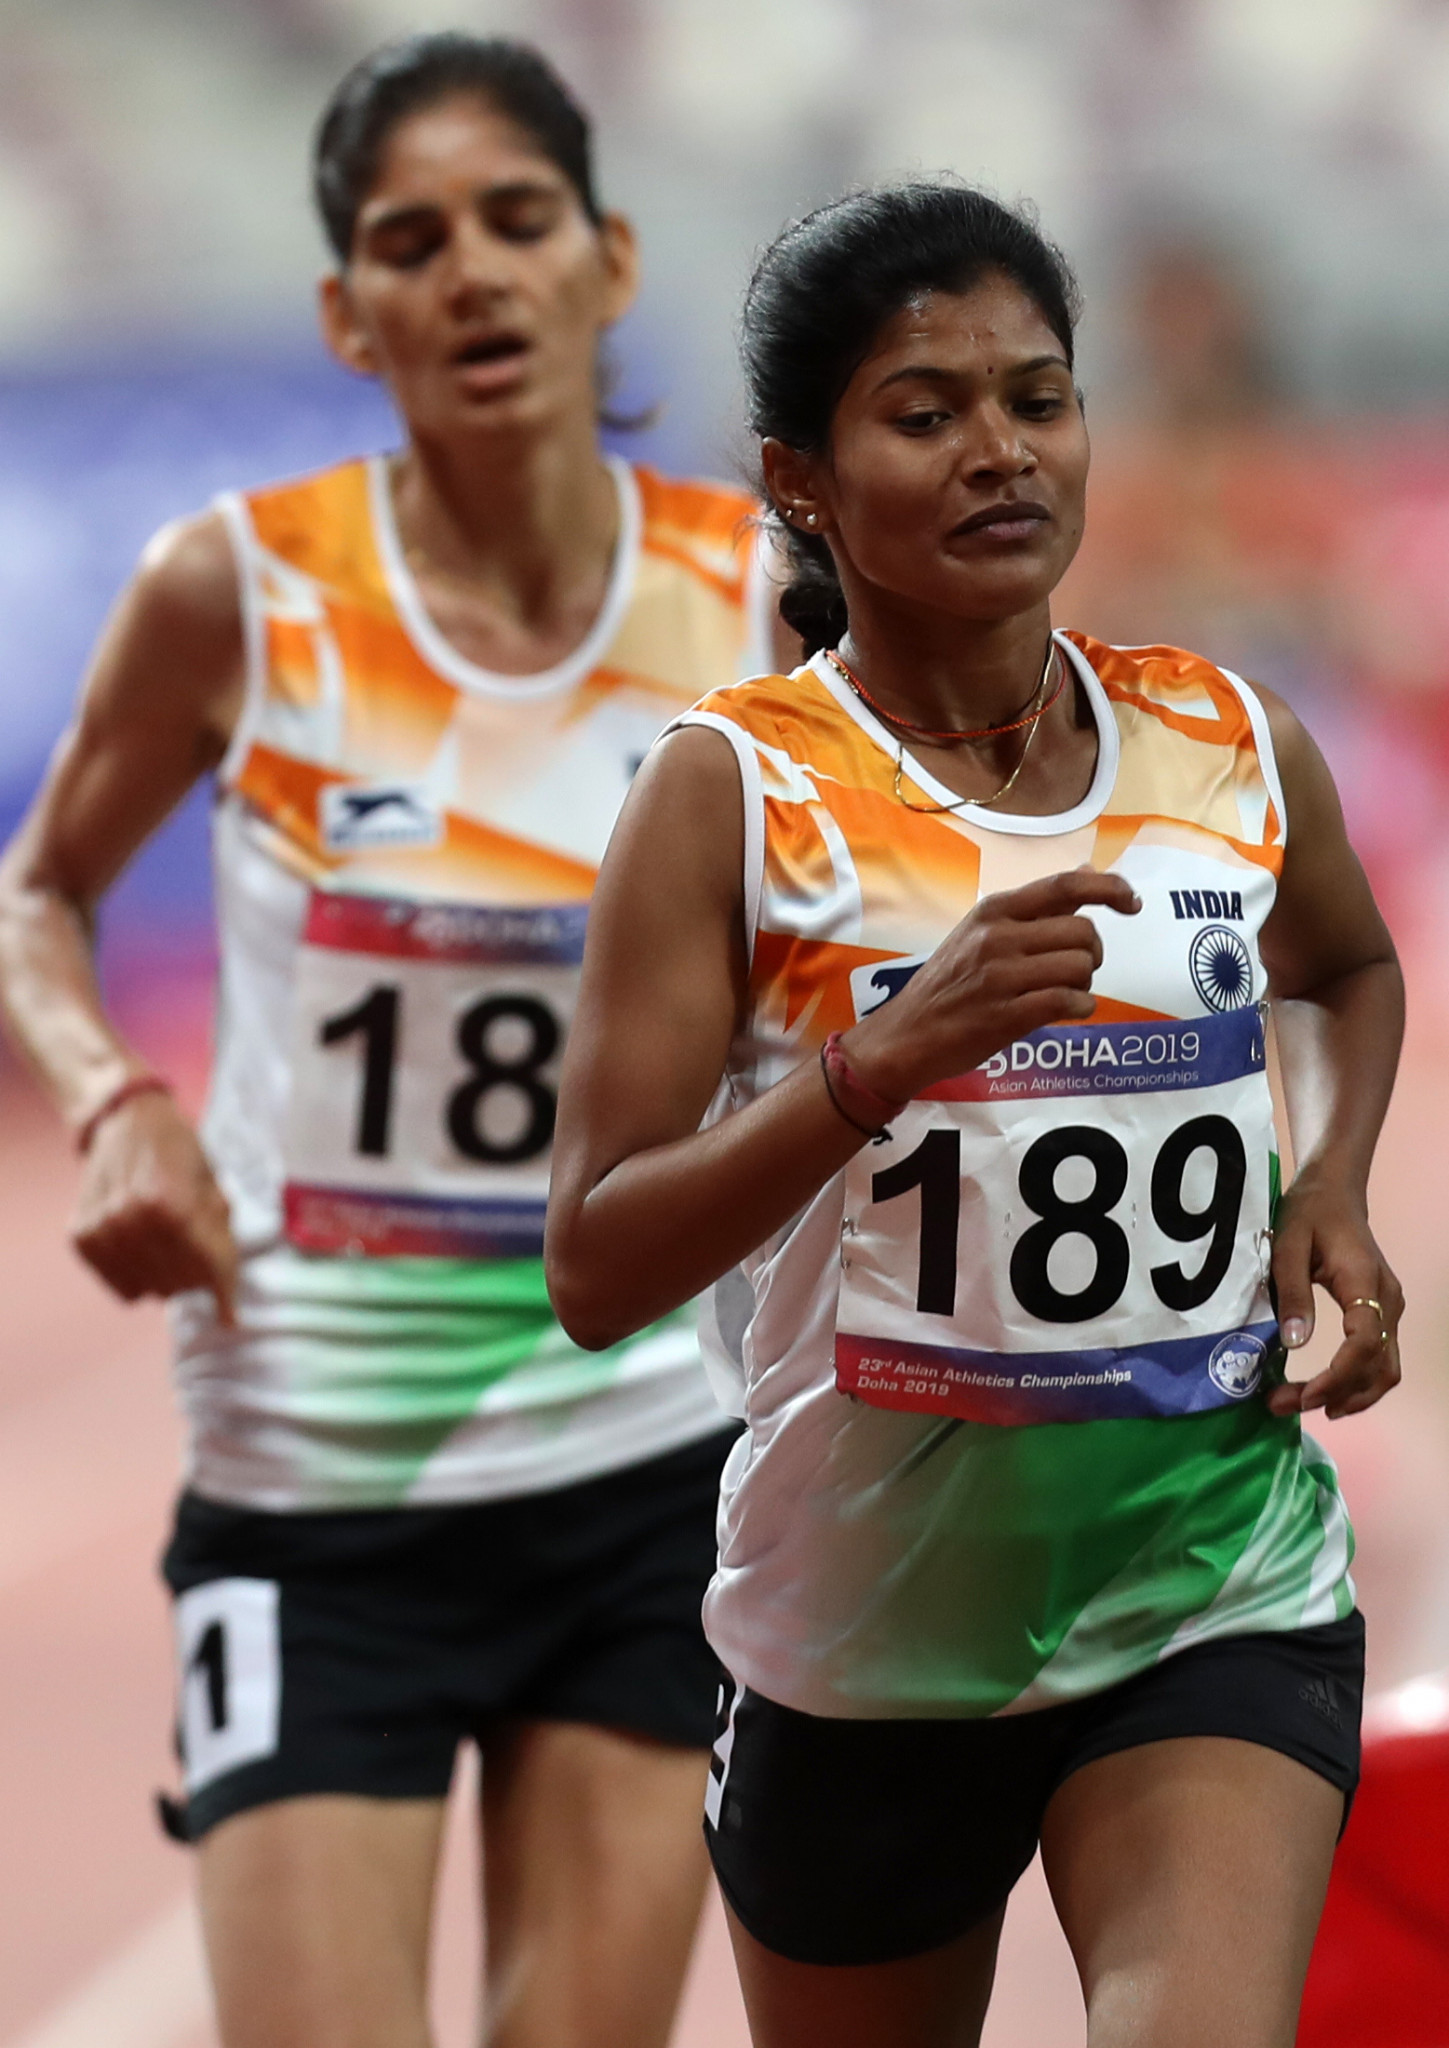 Sanjivani Jadhav is a two-time Asian Athletics Championships bronze medallist ©Getty Images